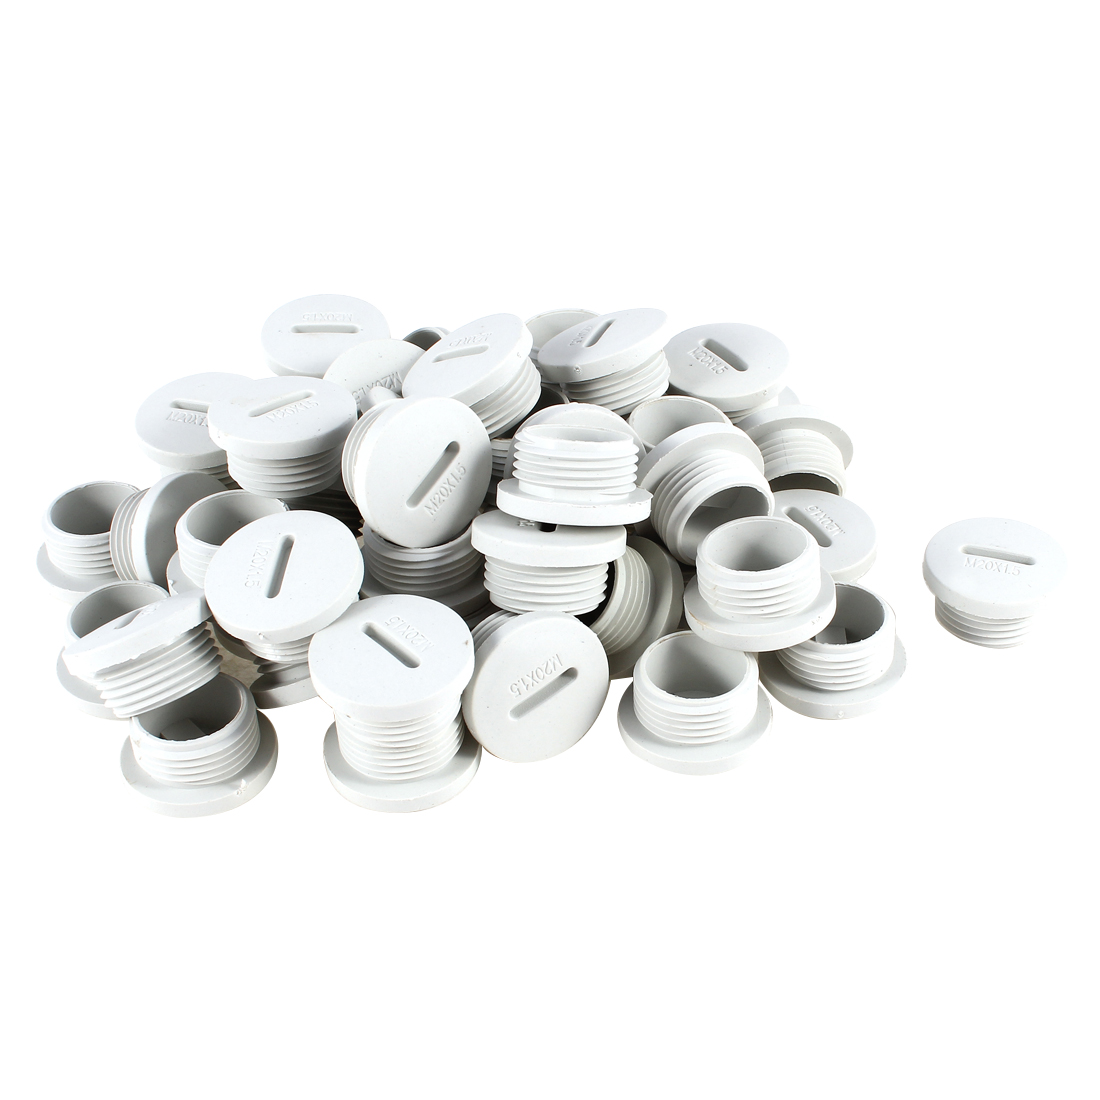 50 Pcs M20 20mm Diameter Round Gray Plastic Furniture Chair Table Legs Blanking End Cap Tubing Tube Insert